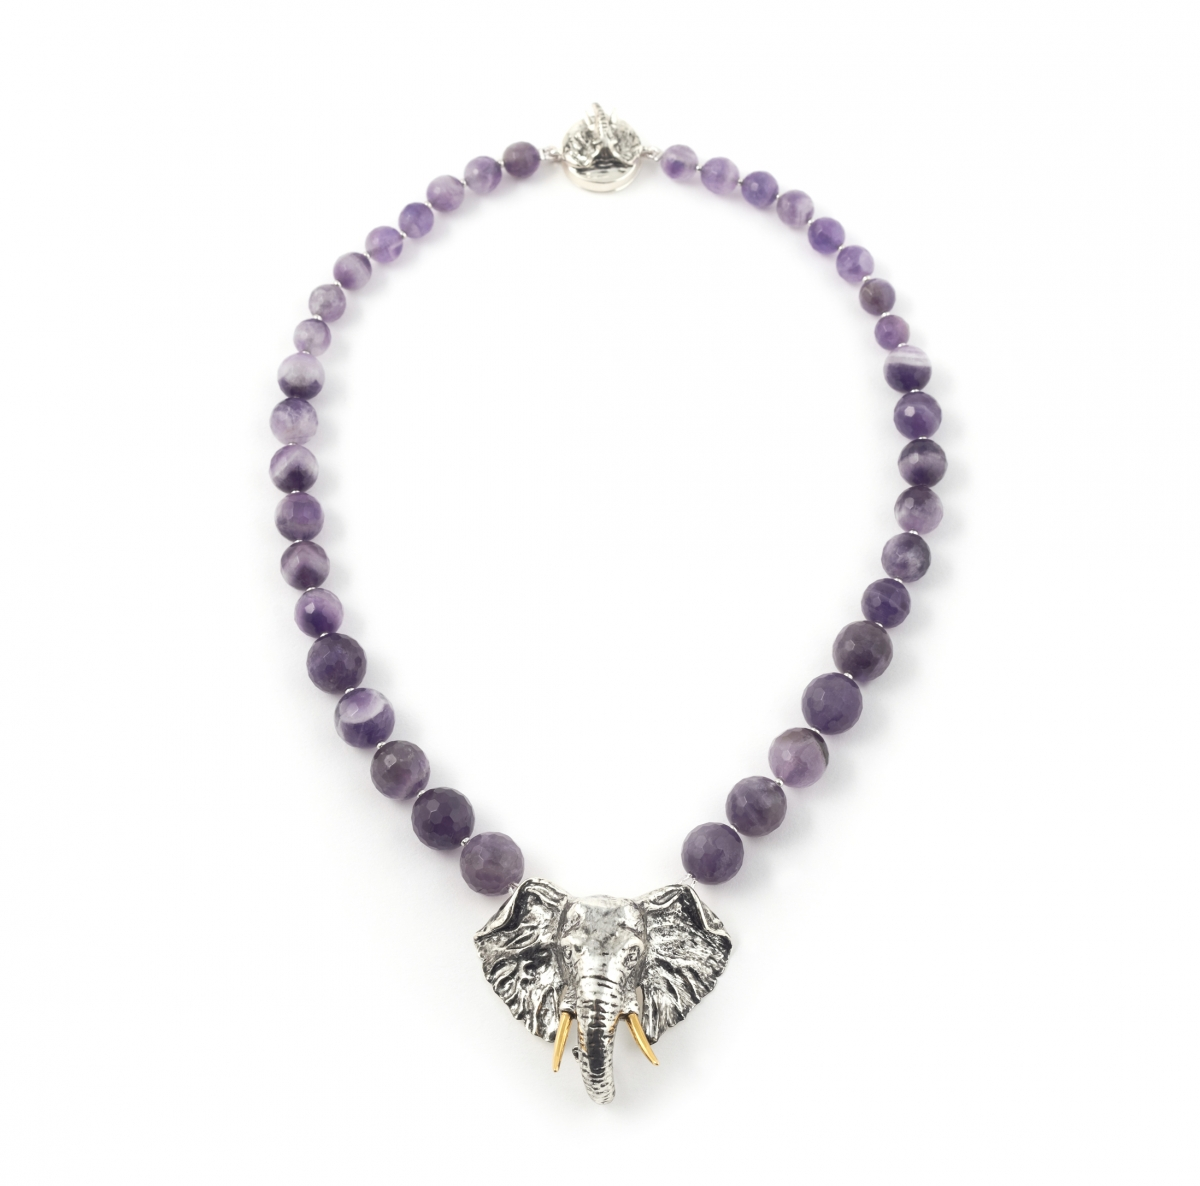 ONLINE EXCLUSIVE Maxi Elephant Head Necklace (amethyst)